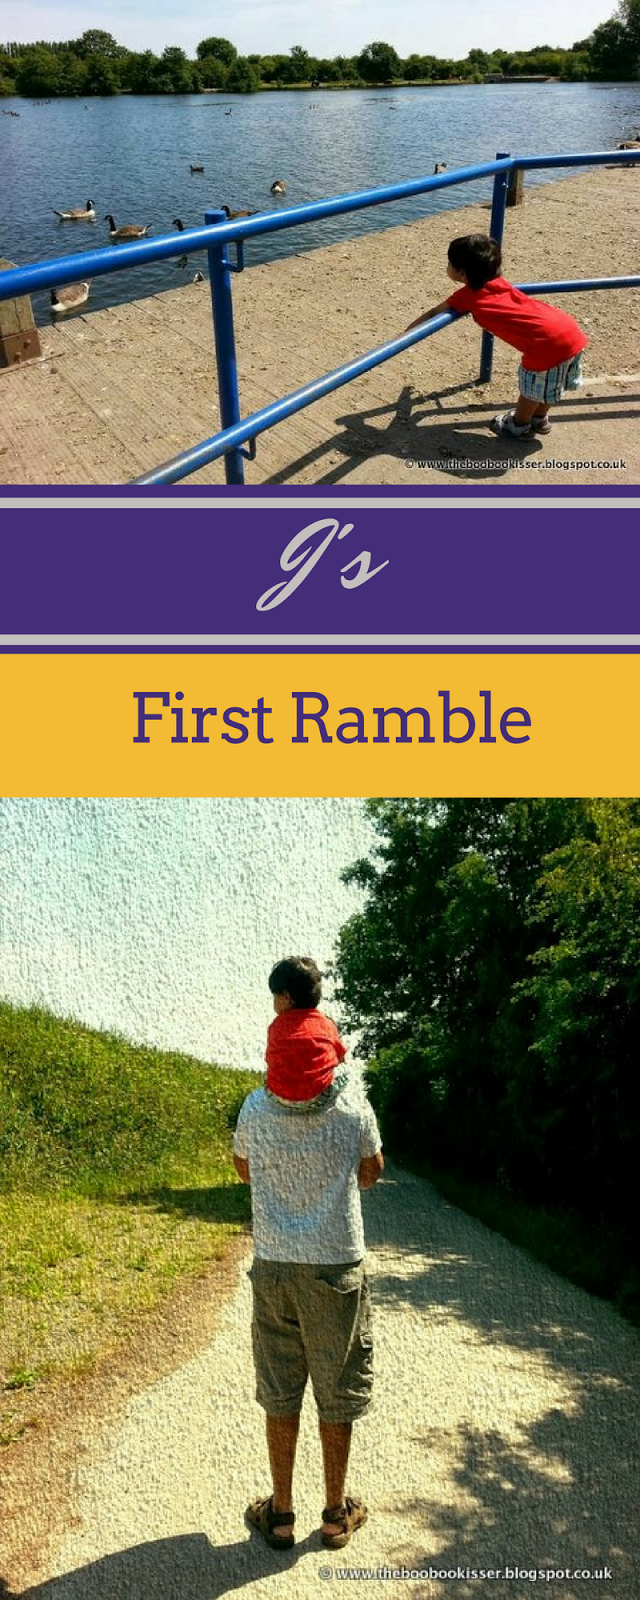 J's First Ramble